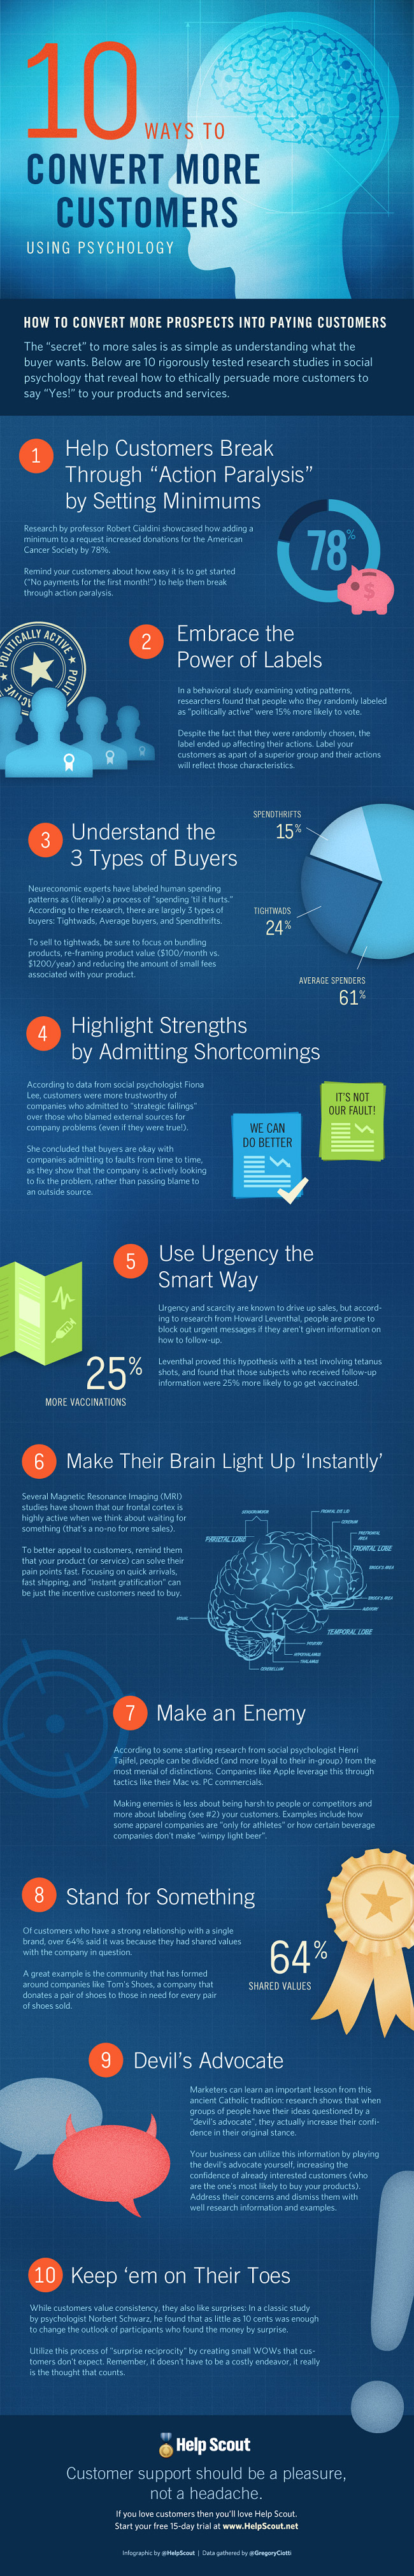 1418158033-10-ways-convert-more-customers-psychology-infographic